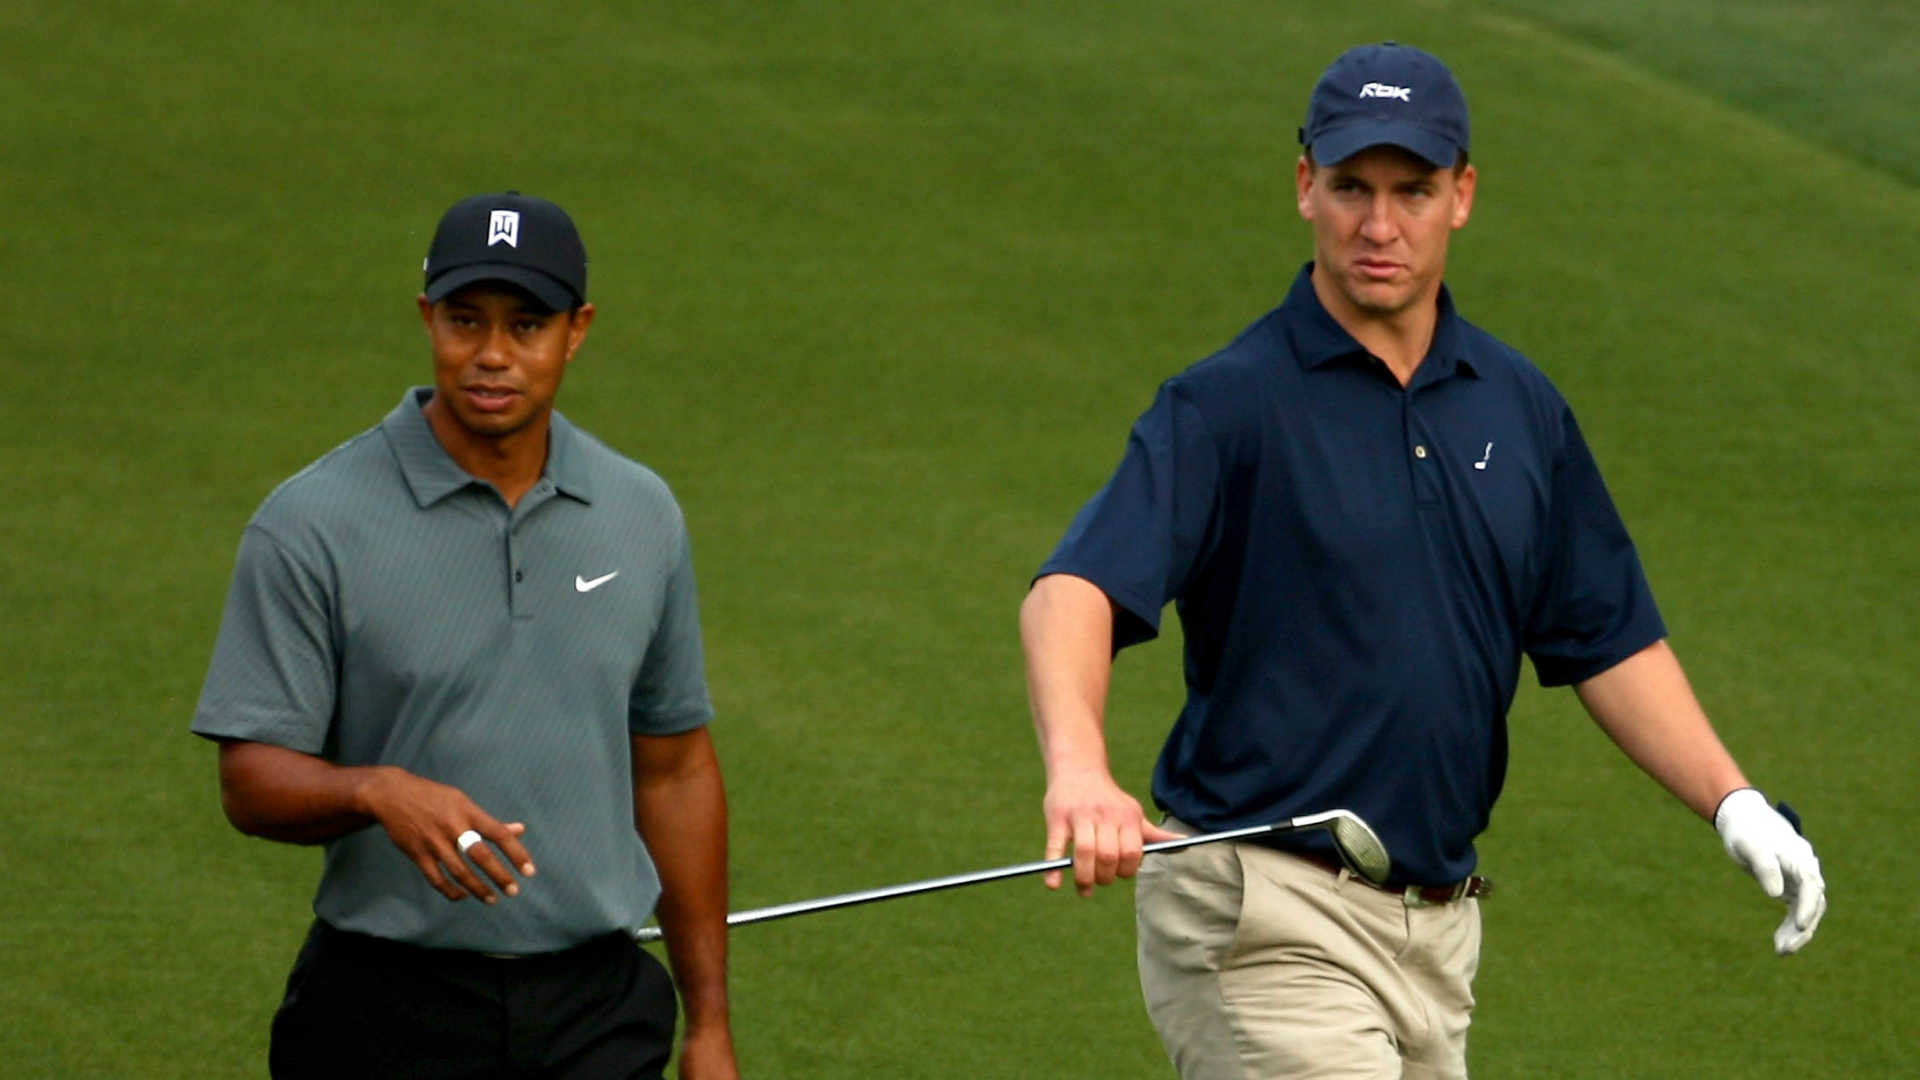 Peyton Manning to play with Tiger Woods in pro-am at Memorial Tournament